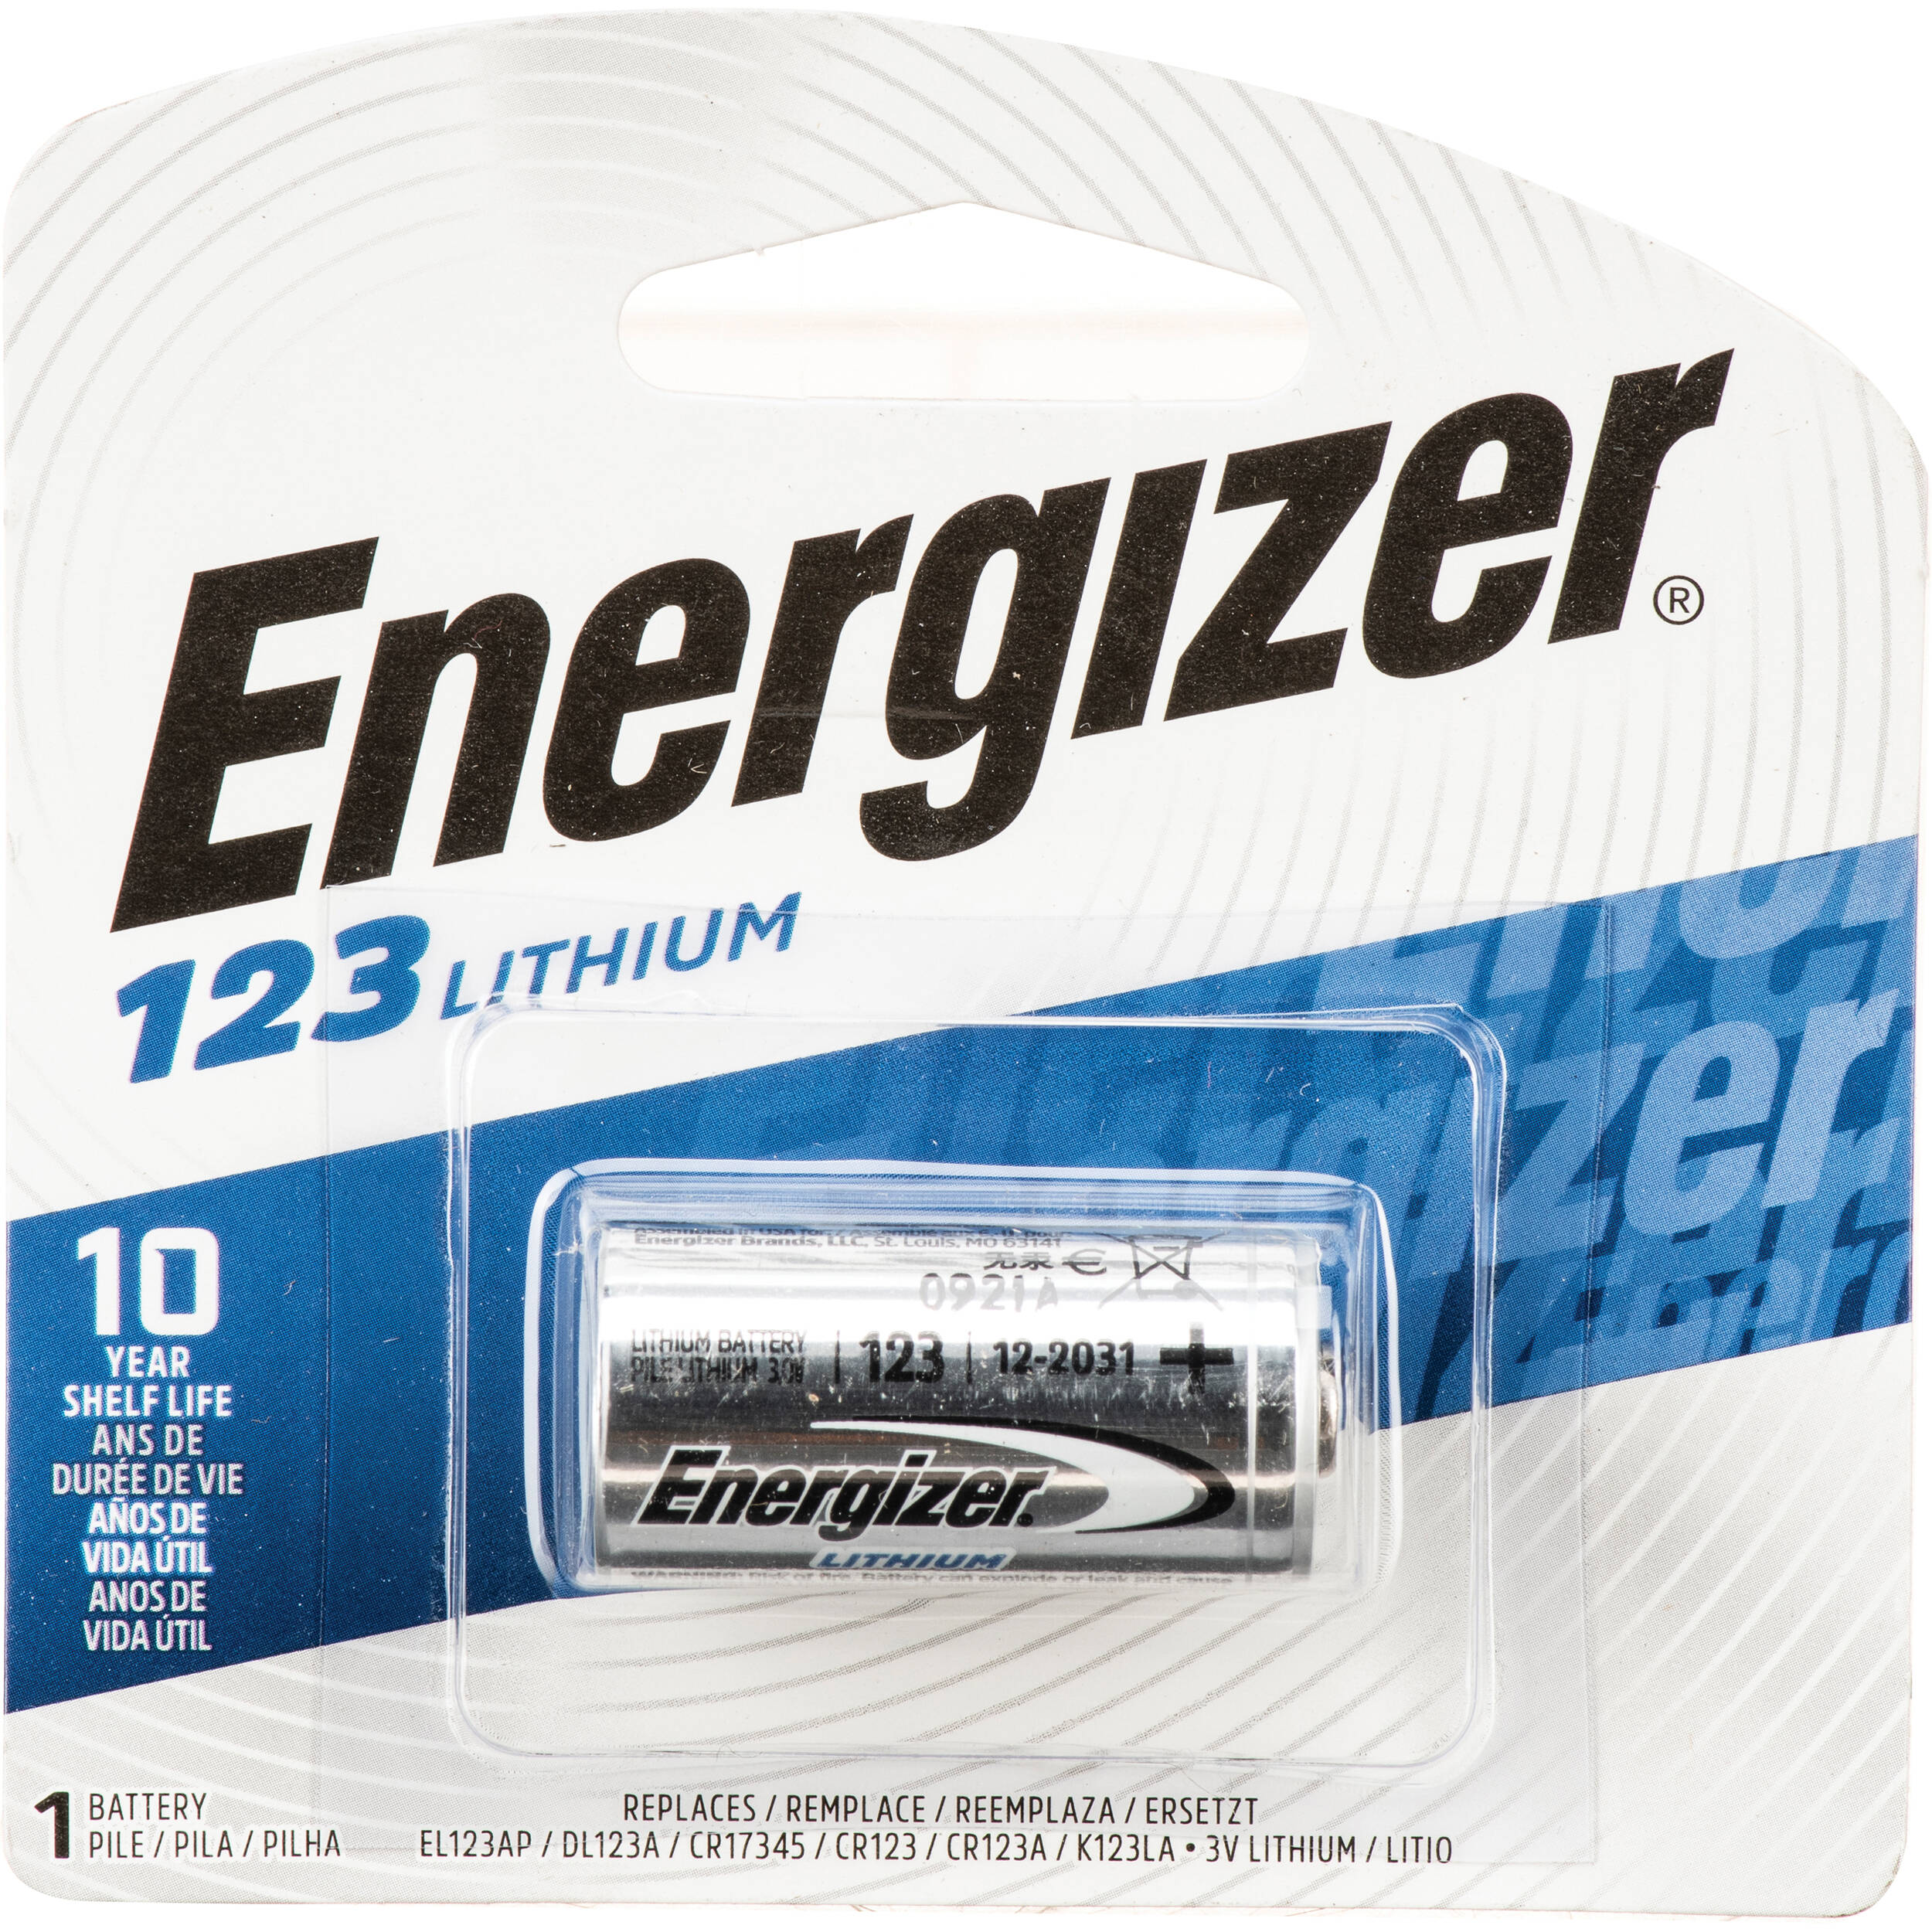 energizer 123 lithium battery 3v 1500mah el123ap b h photo. Black Bedroom Furniture Sets. Home Design Ideas